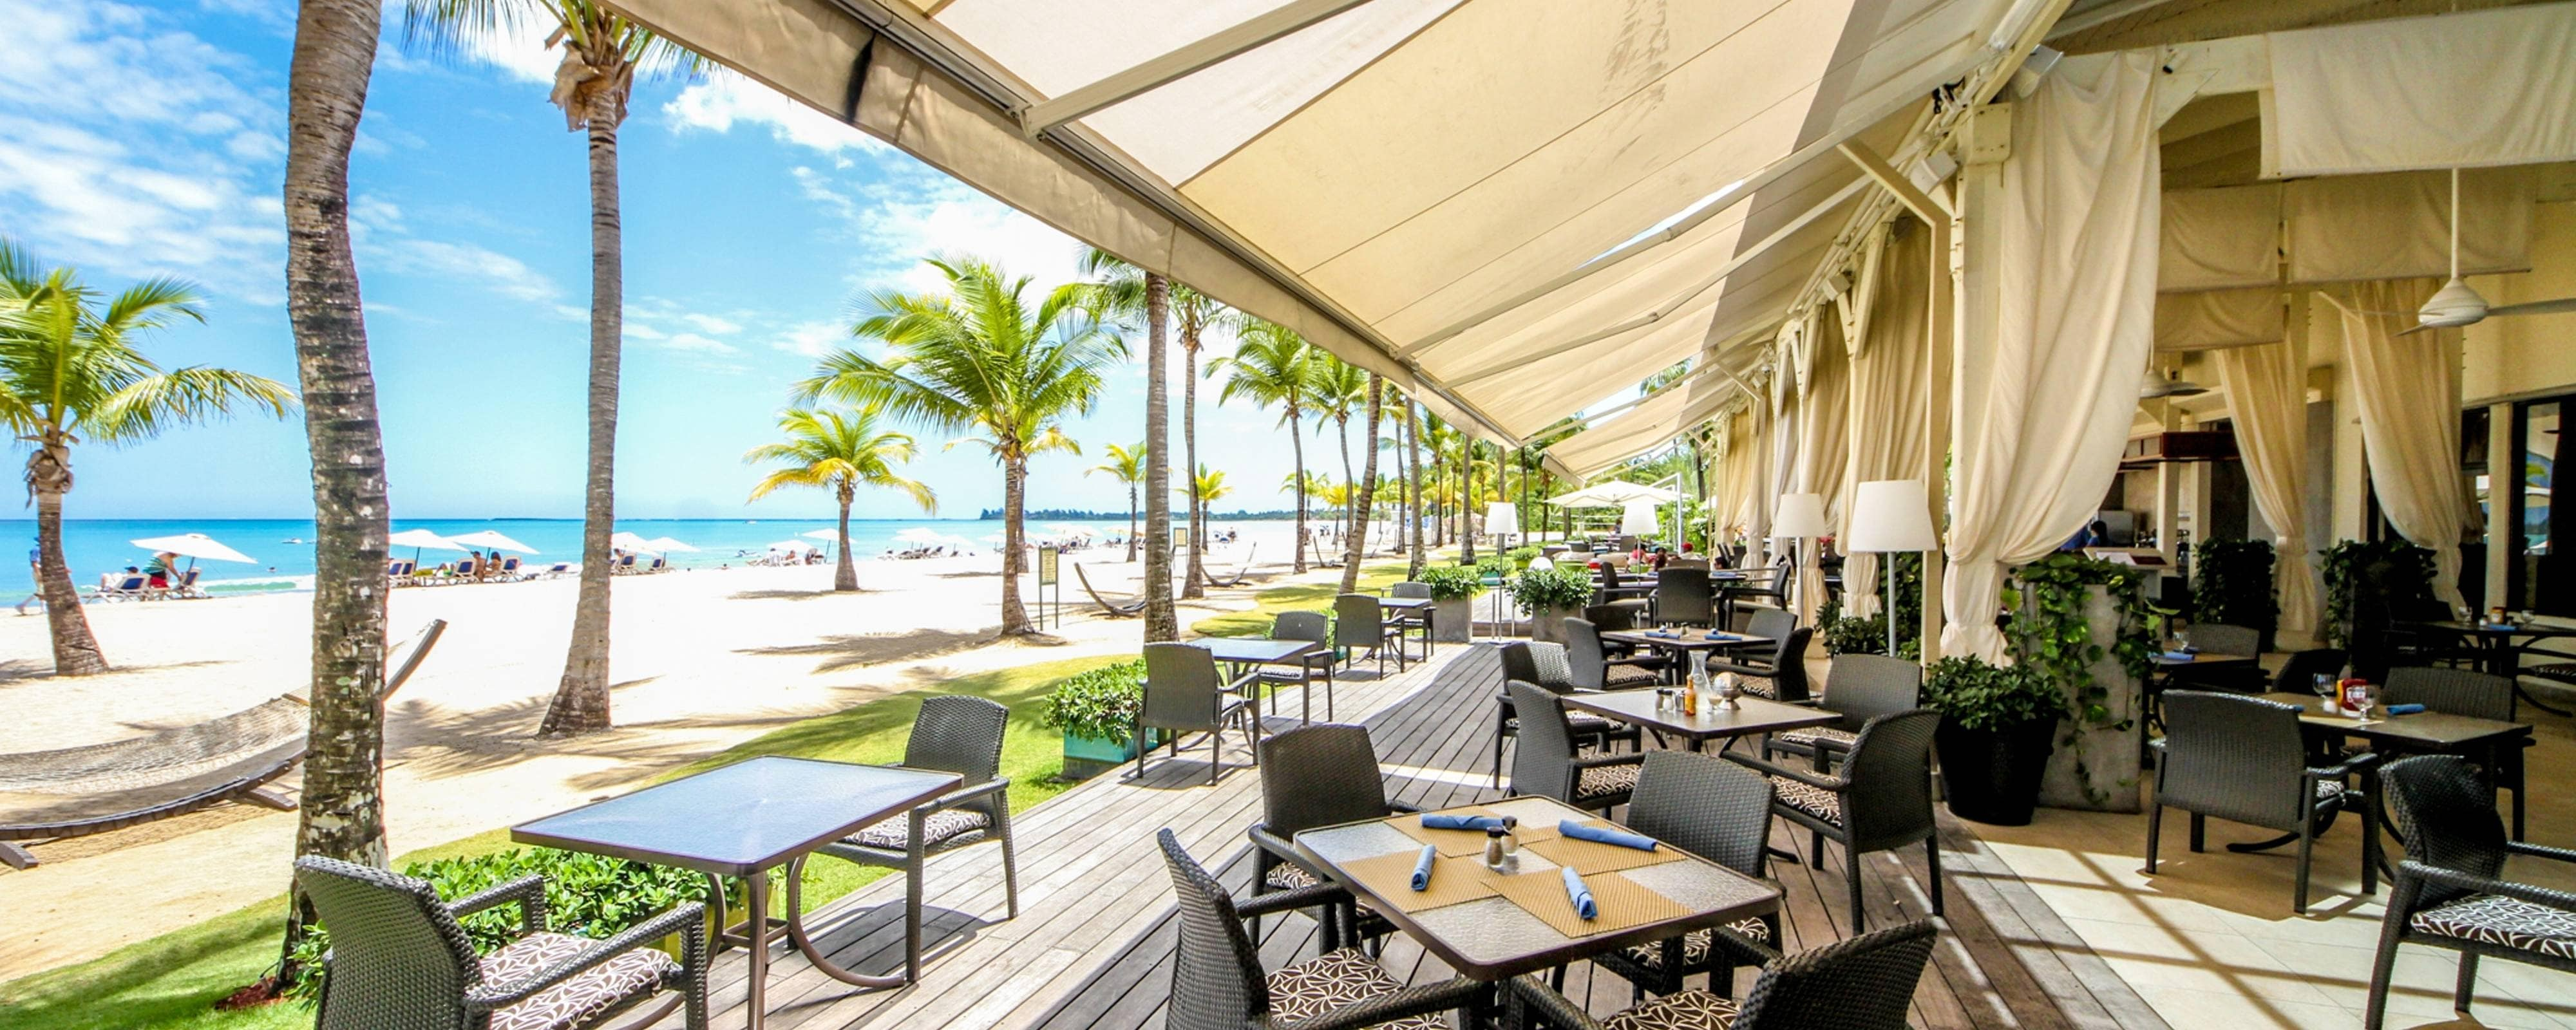 Restaurants Miami Beach Seafood